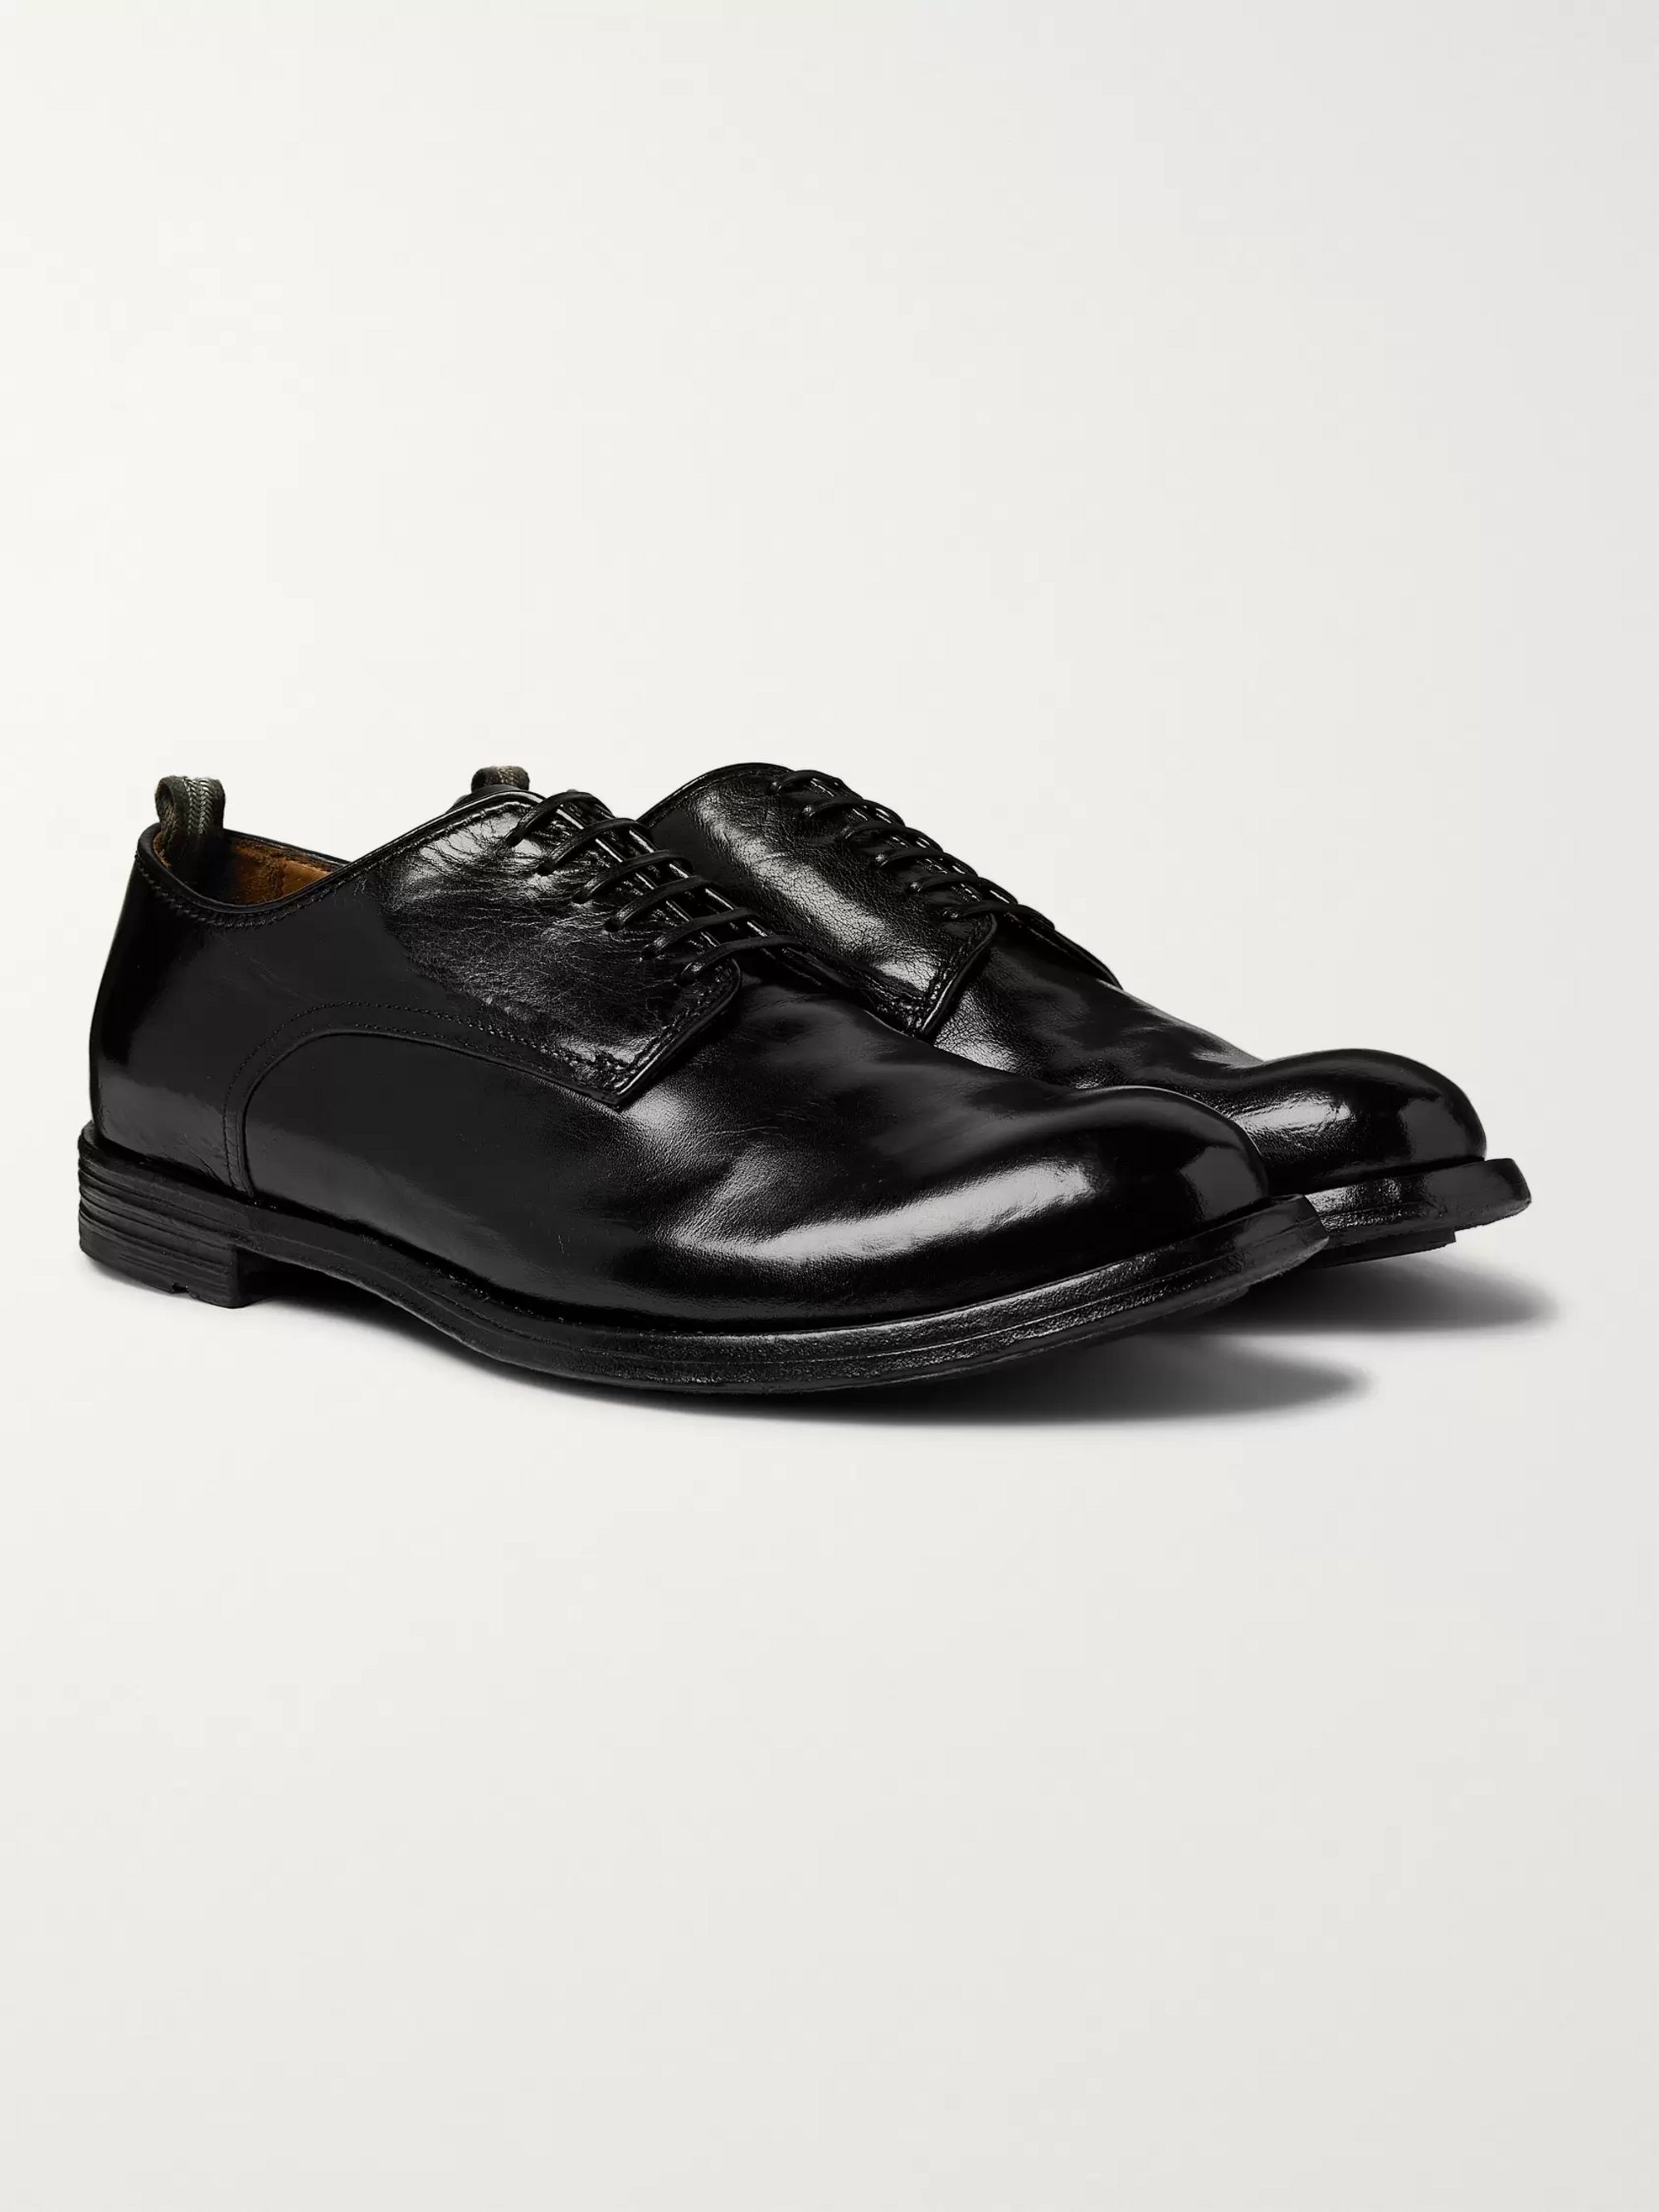 4d62bd04022 Officine Creative | MR PORTER